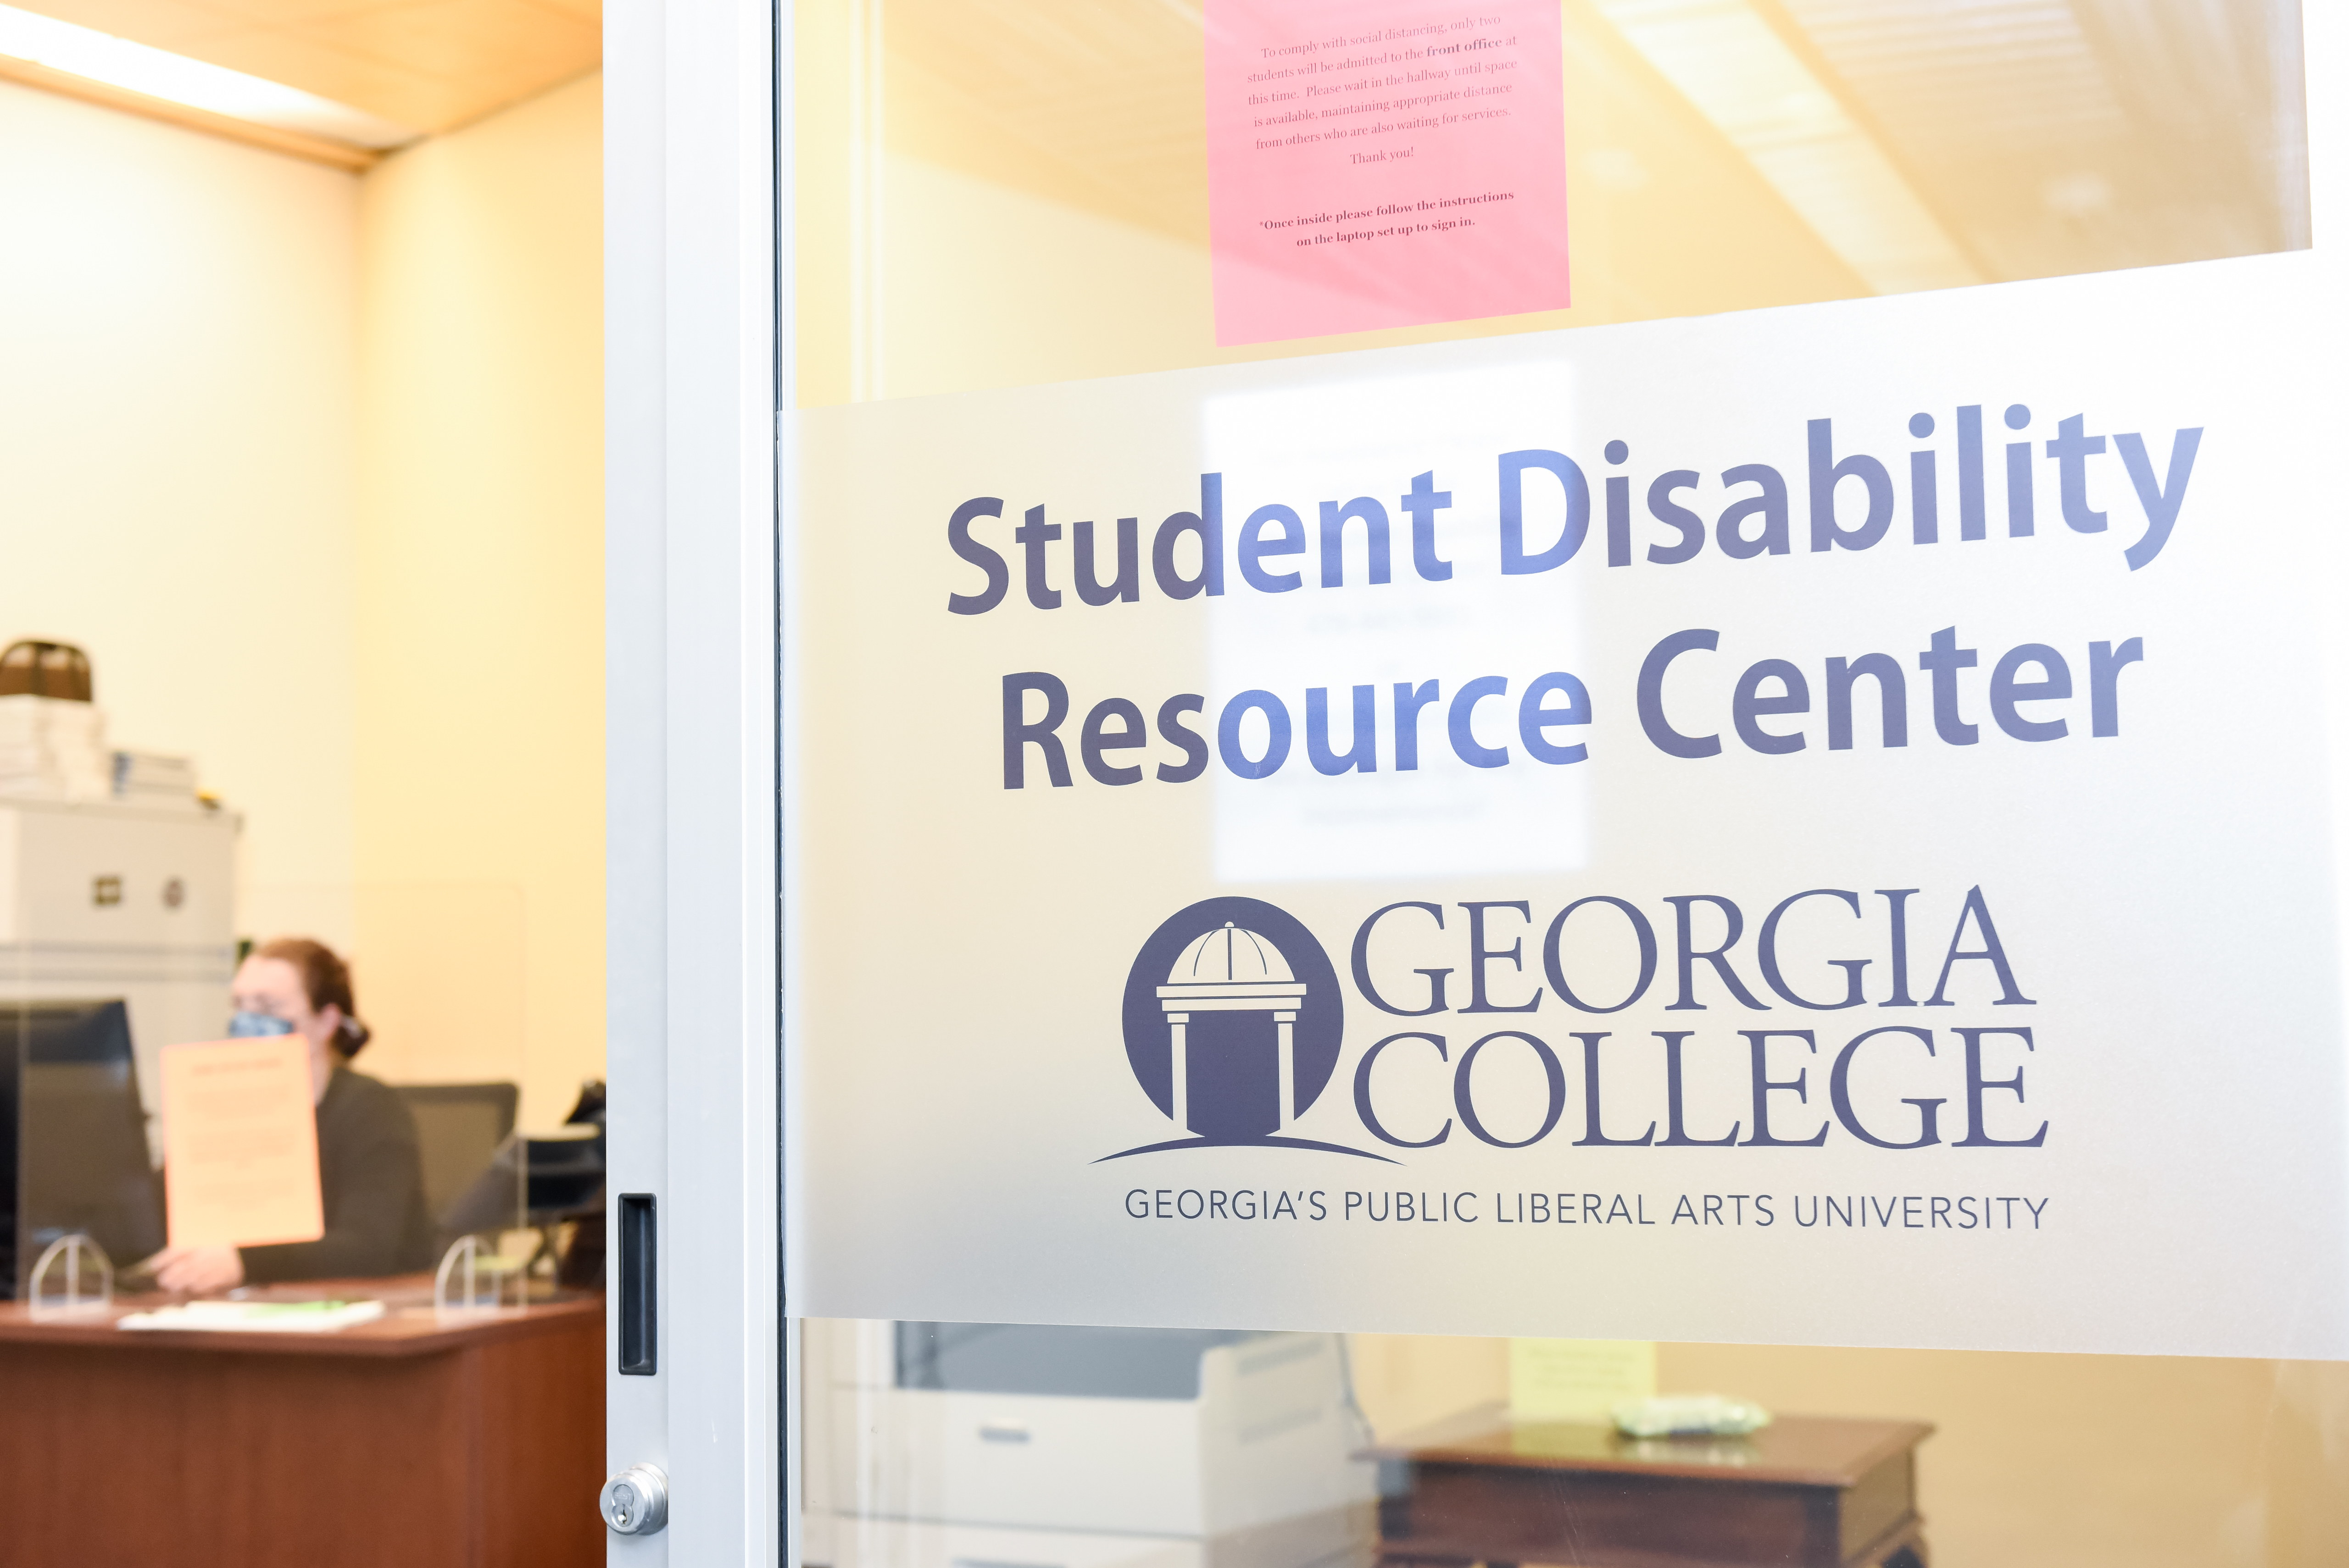 Image for Leveling the playing field for students with disabilities